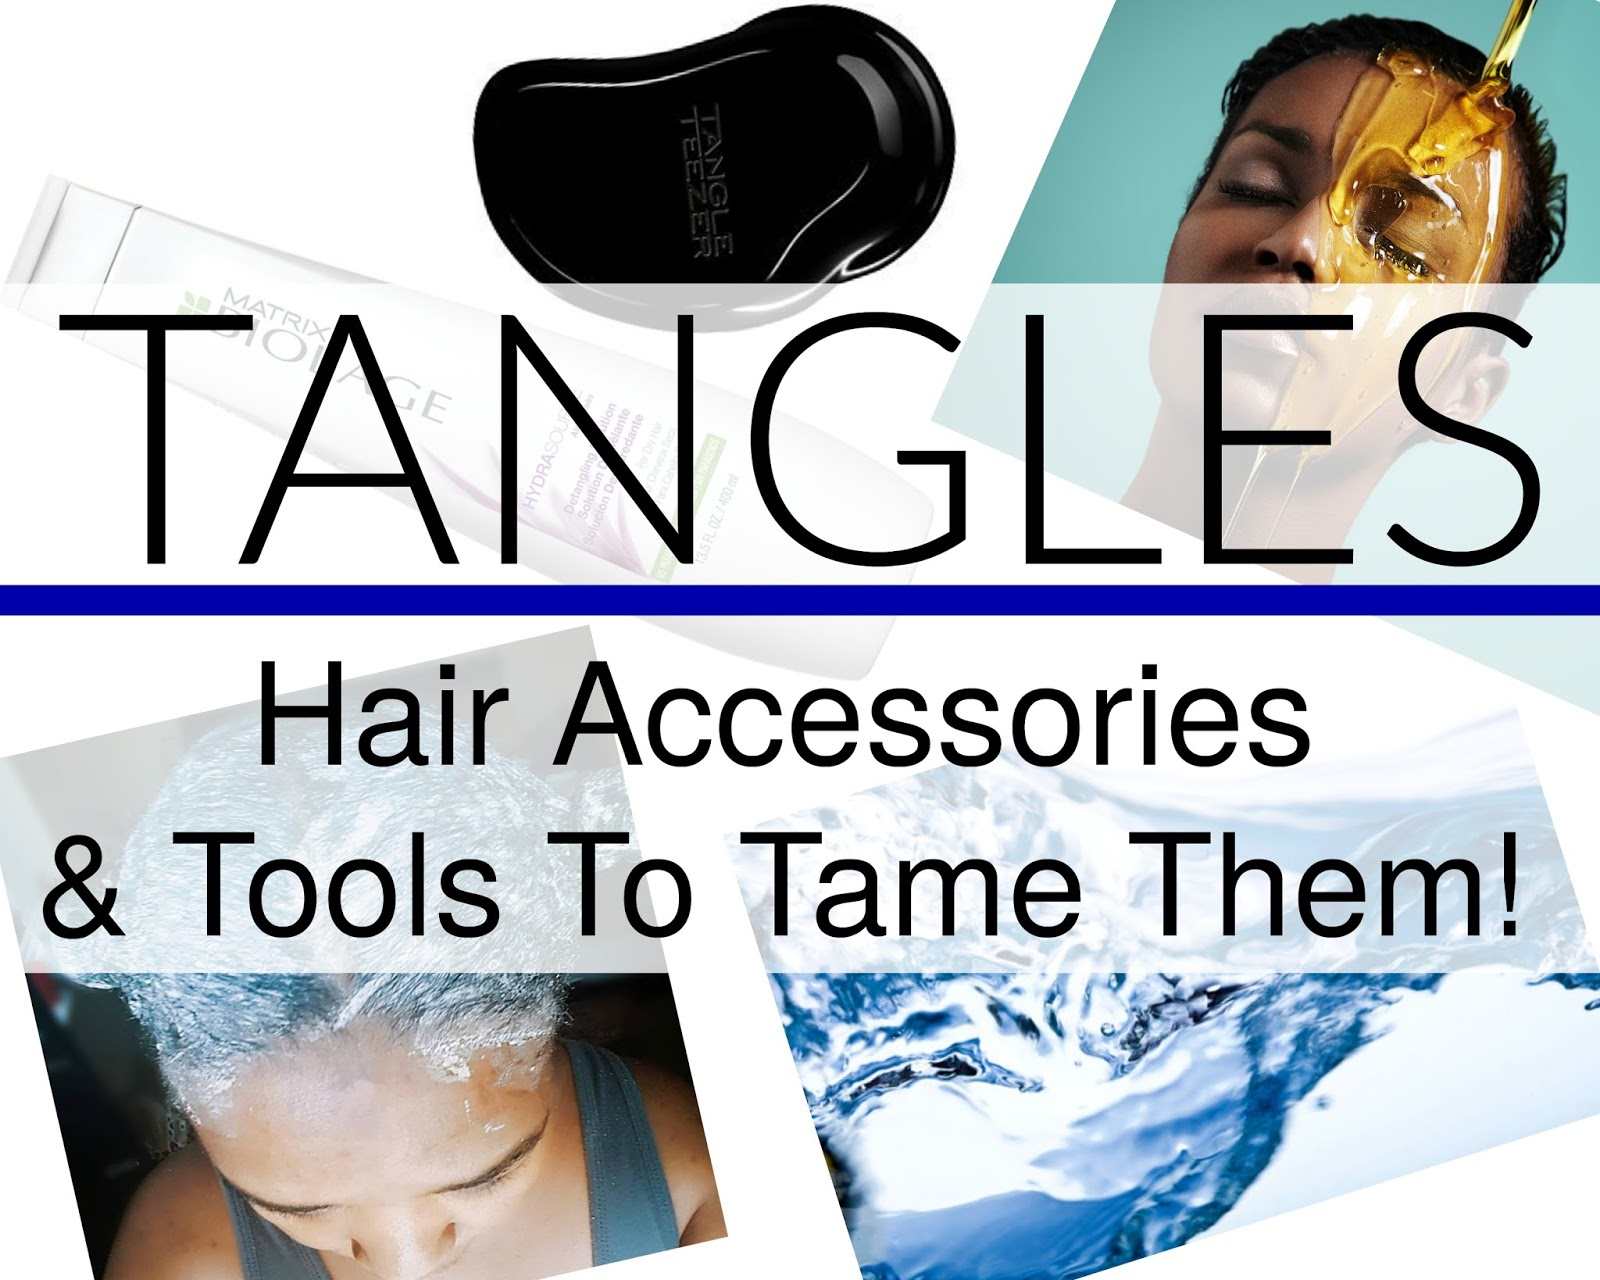 Tangles: Hair Accessories & Tools To Tame Them!